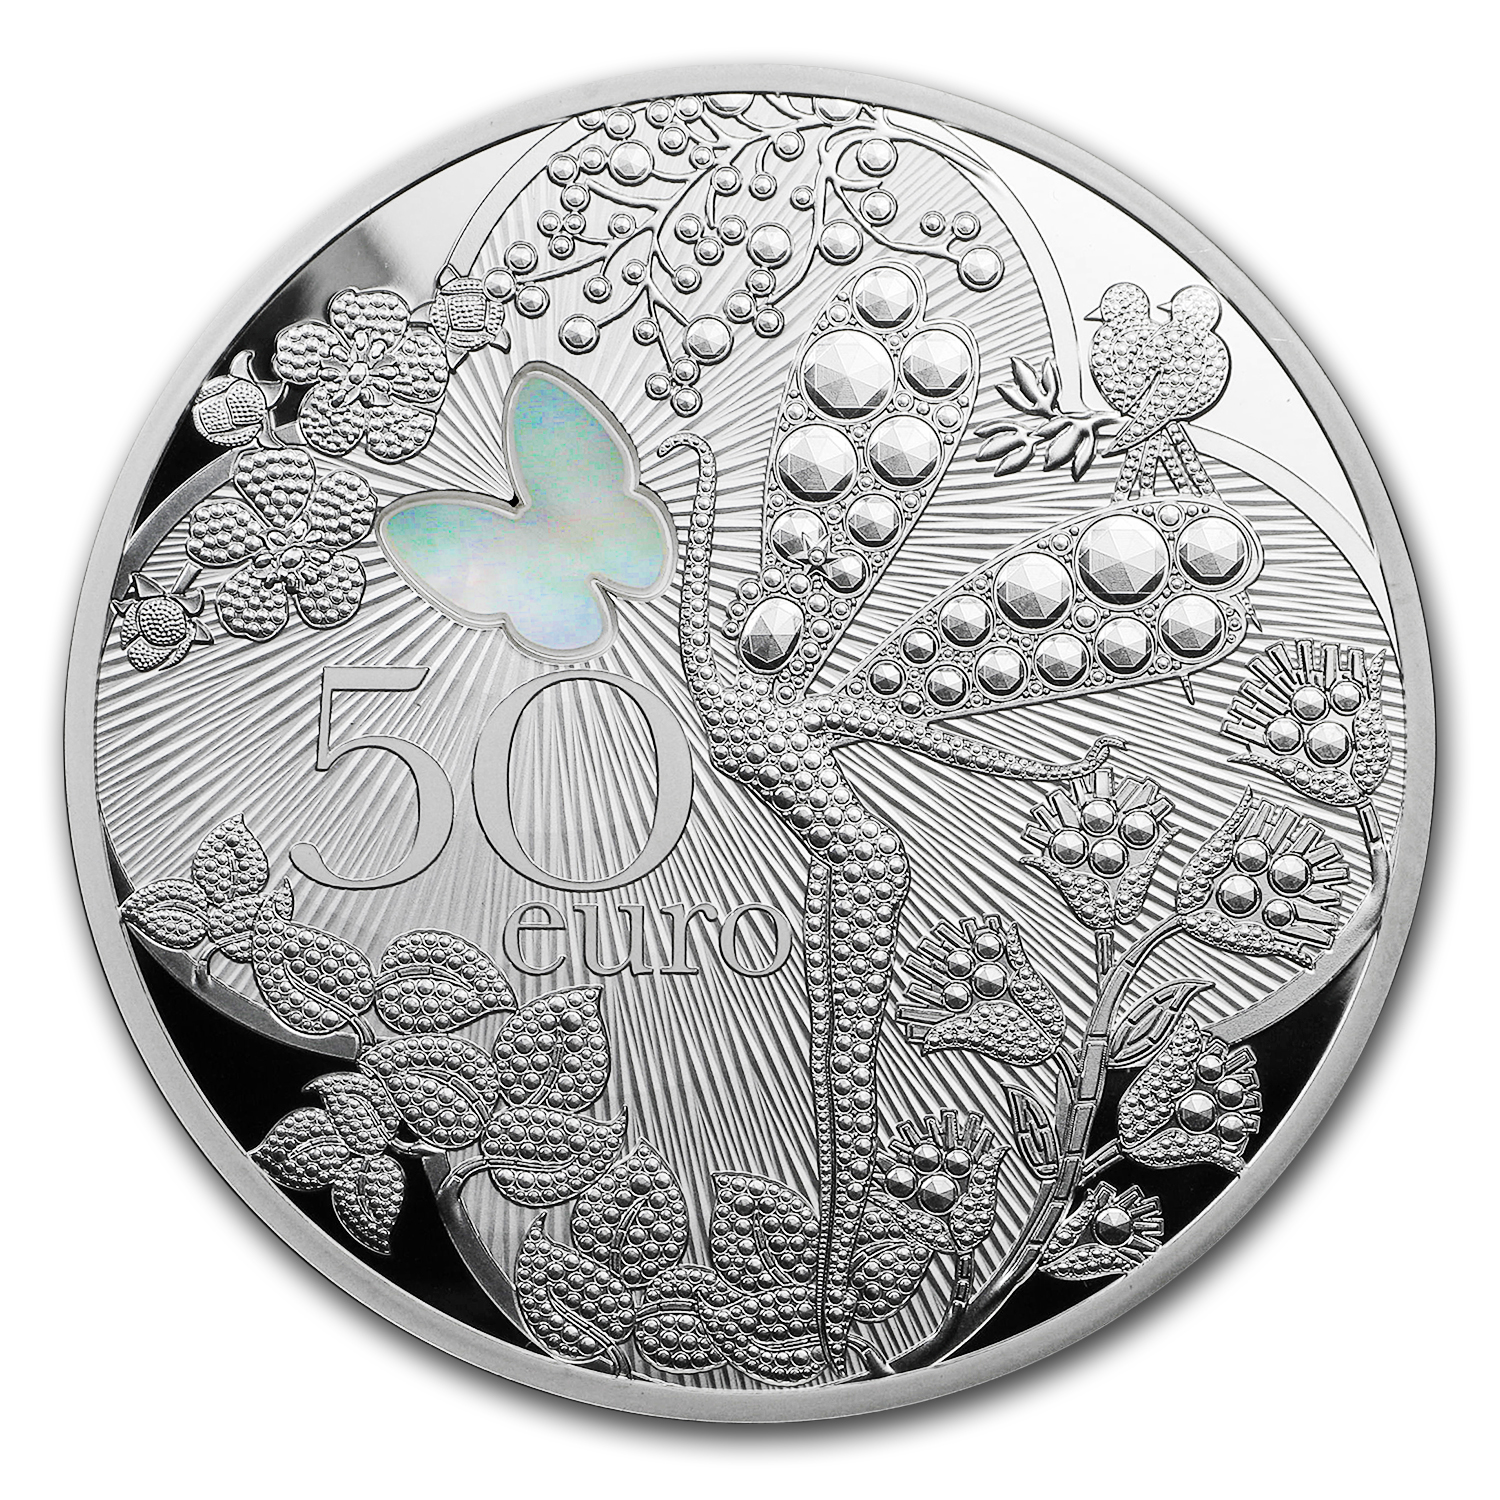 2016 France 5 oz Silver Excellence Series (Van Cleef & Arpels)